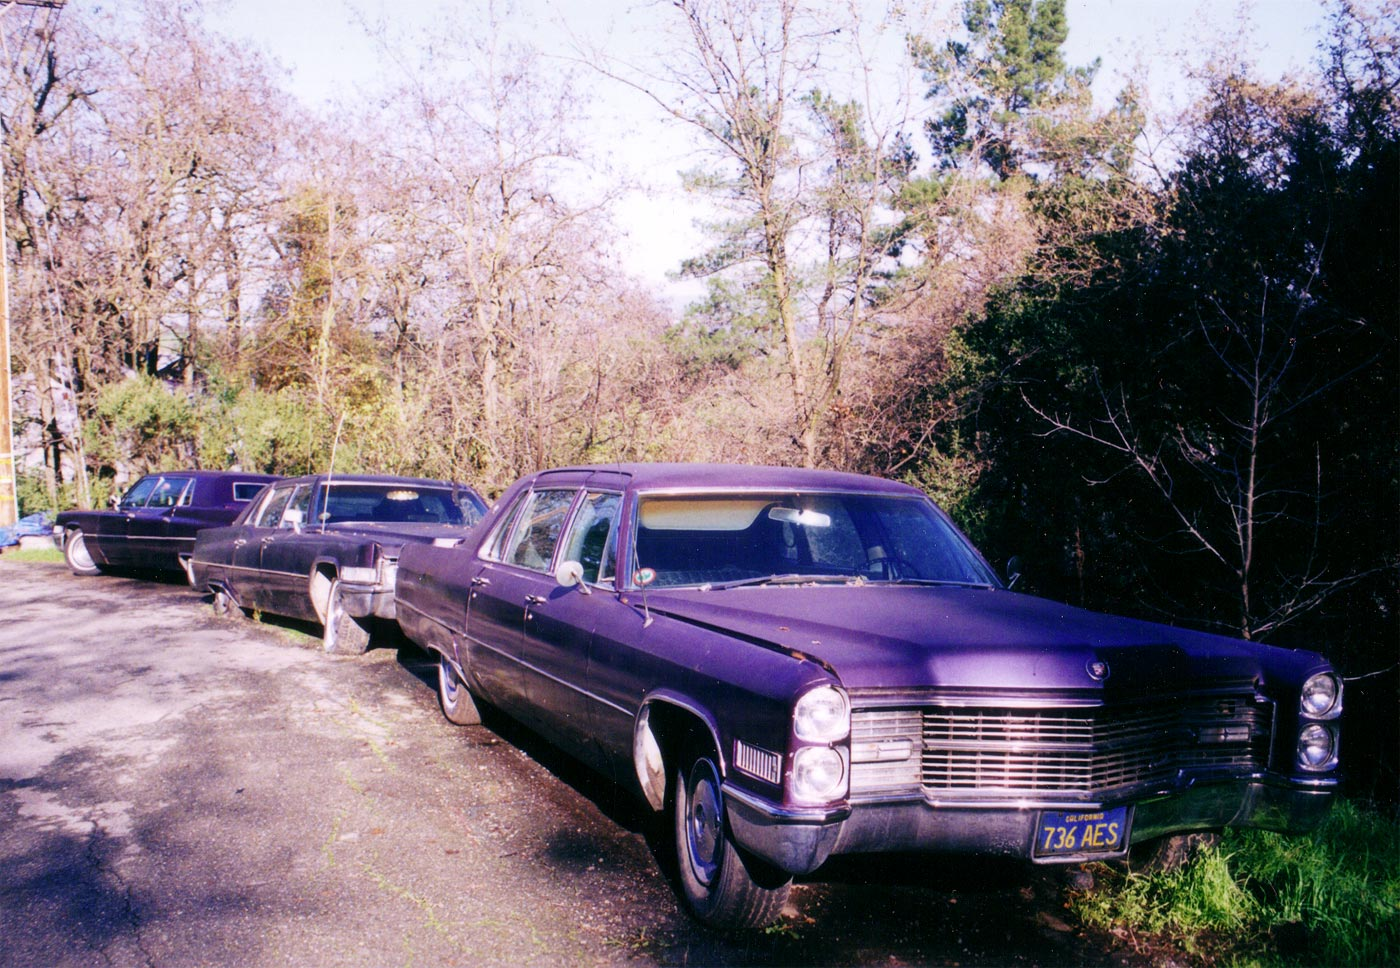 Purple Cadillac limo graveyard.